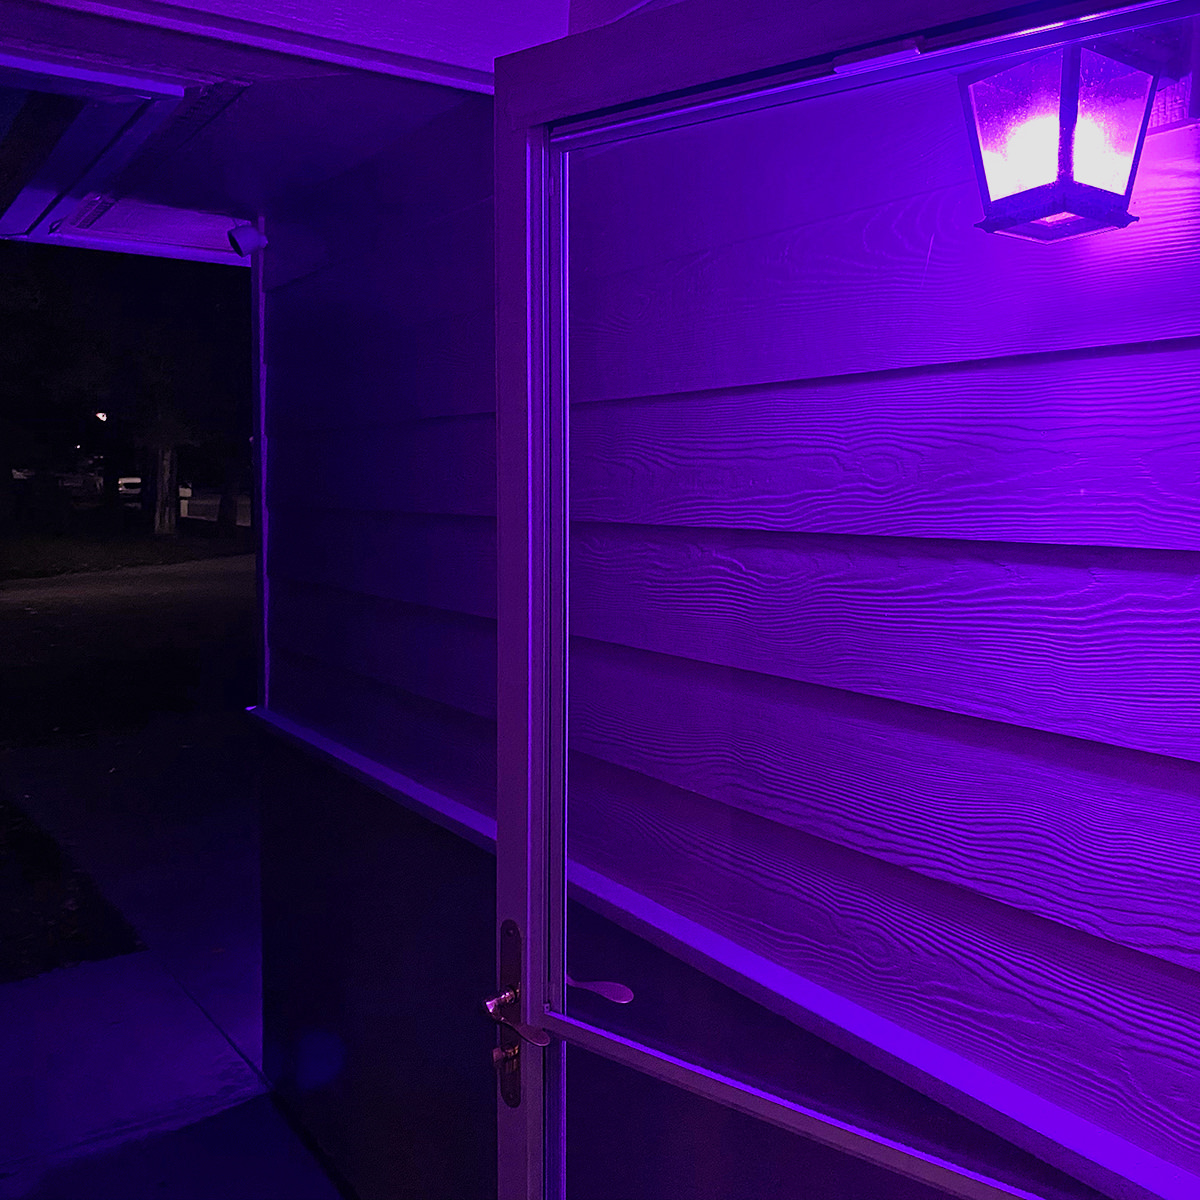 An eerie purple glow from my porch light illuminates the front of my home.